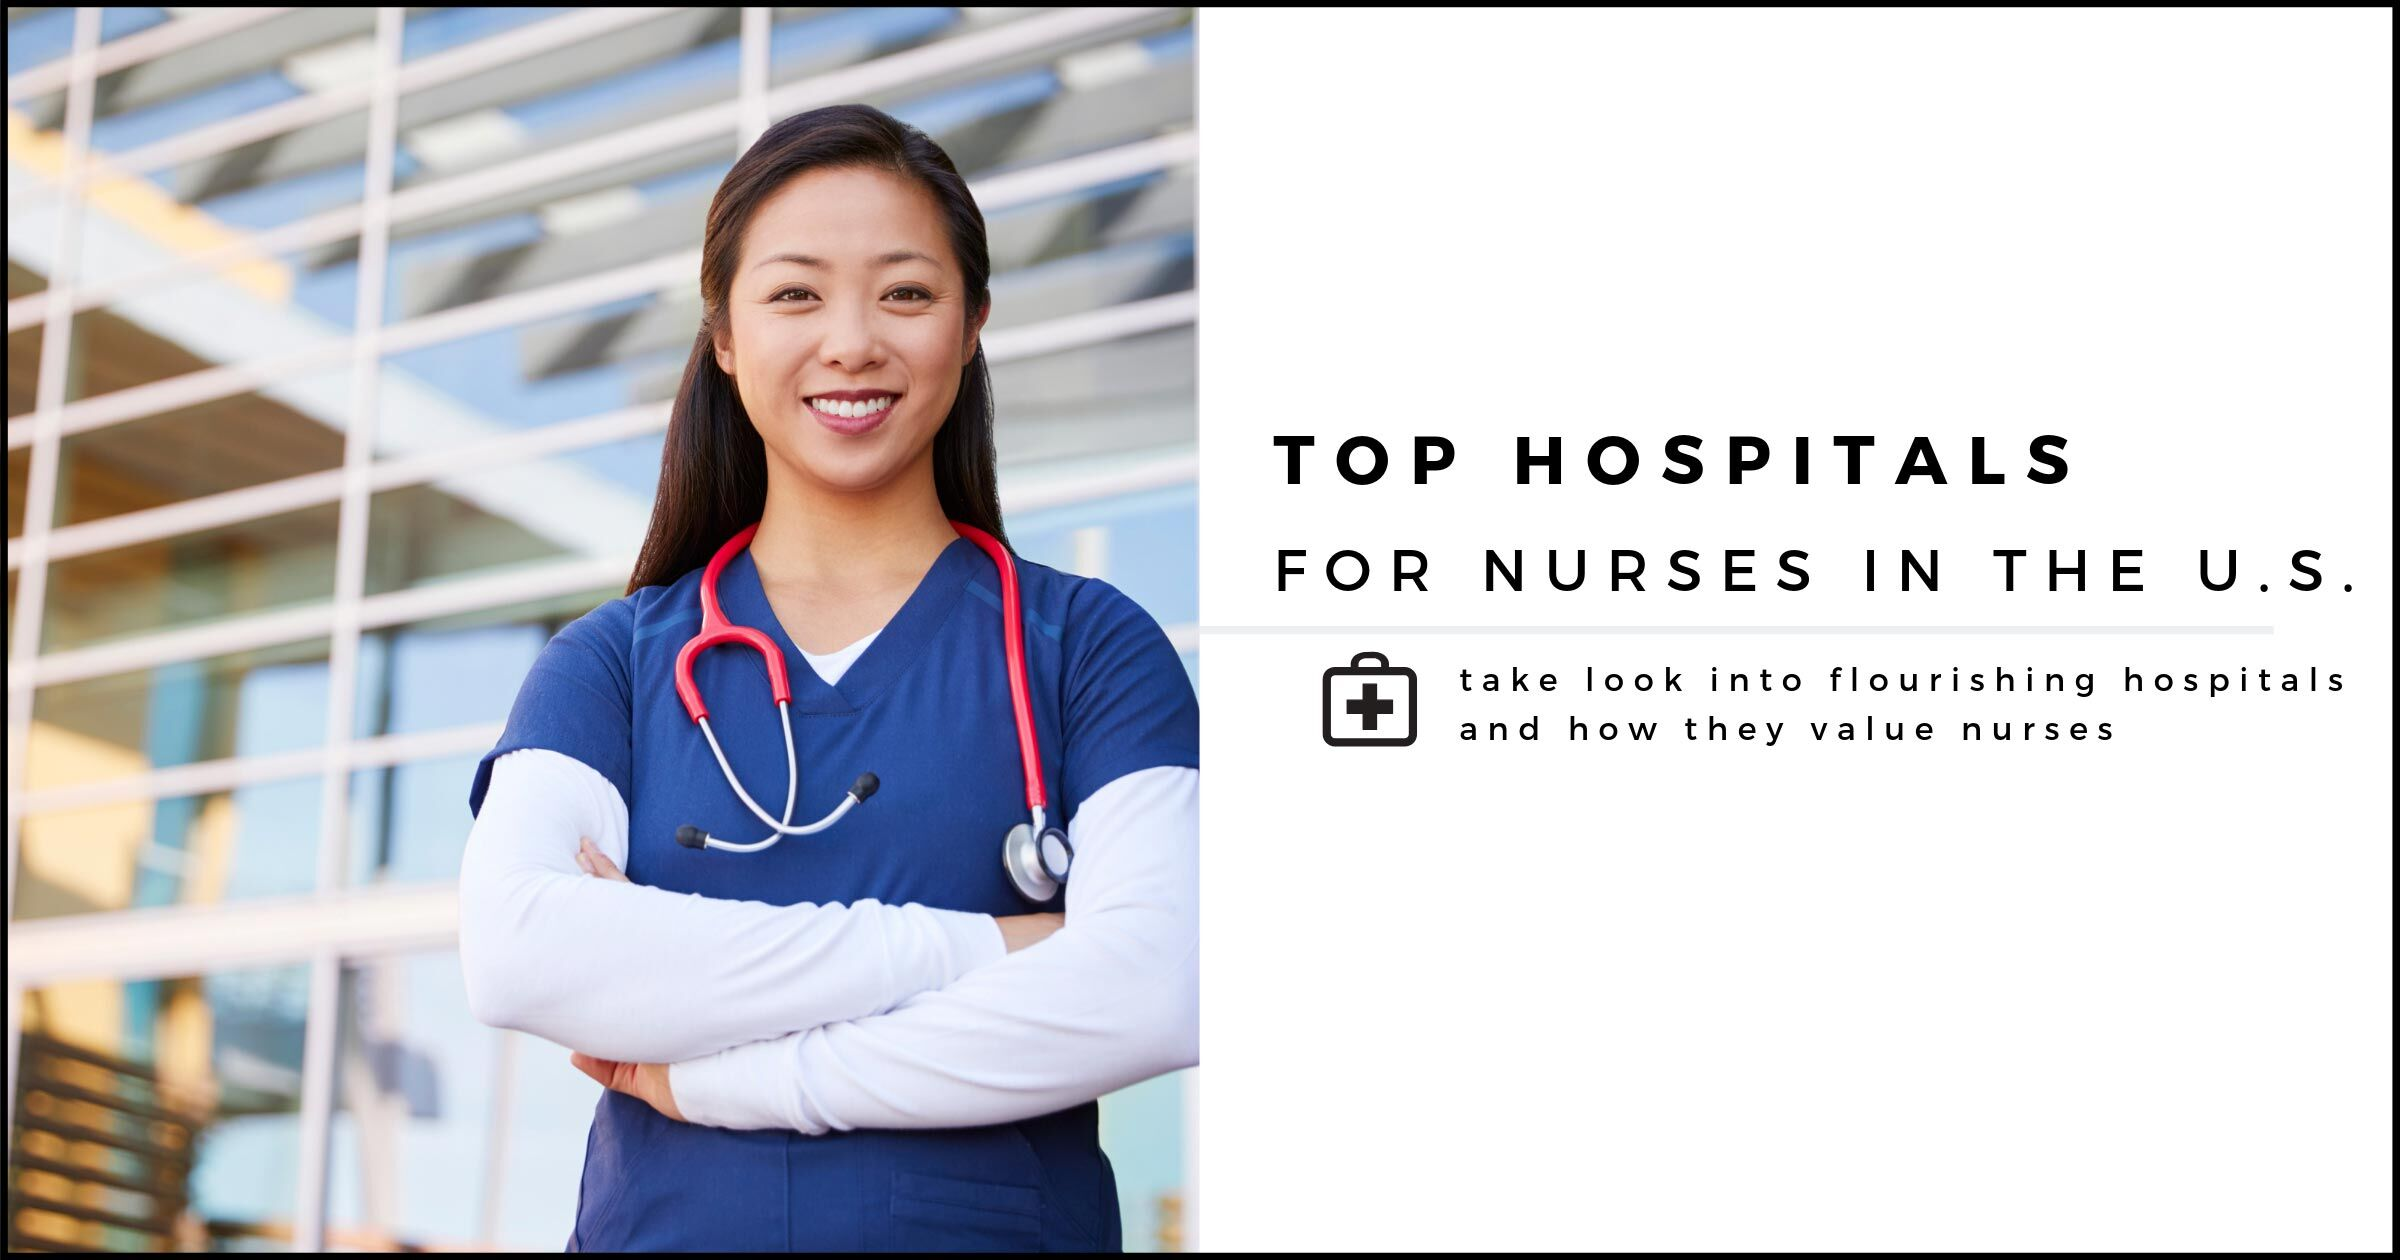 Top Hospitals for Nurses in the U.S.